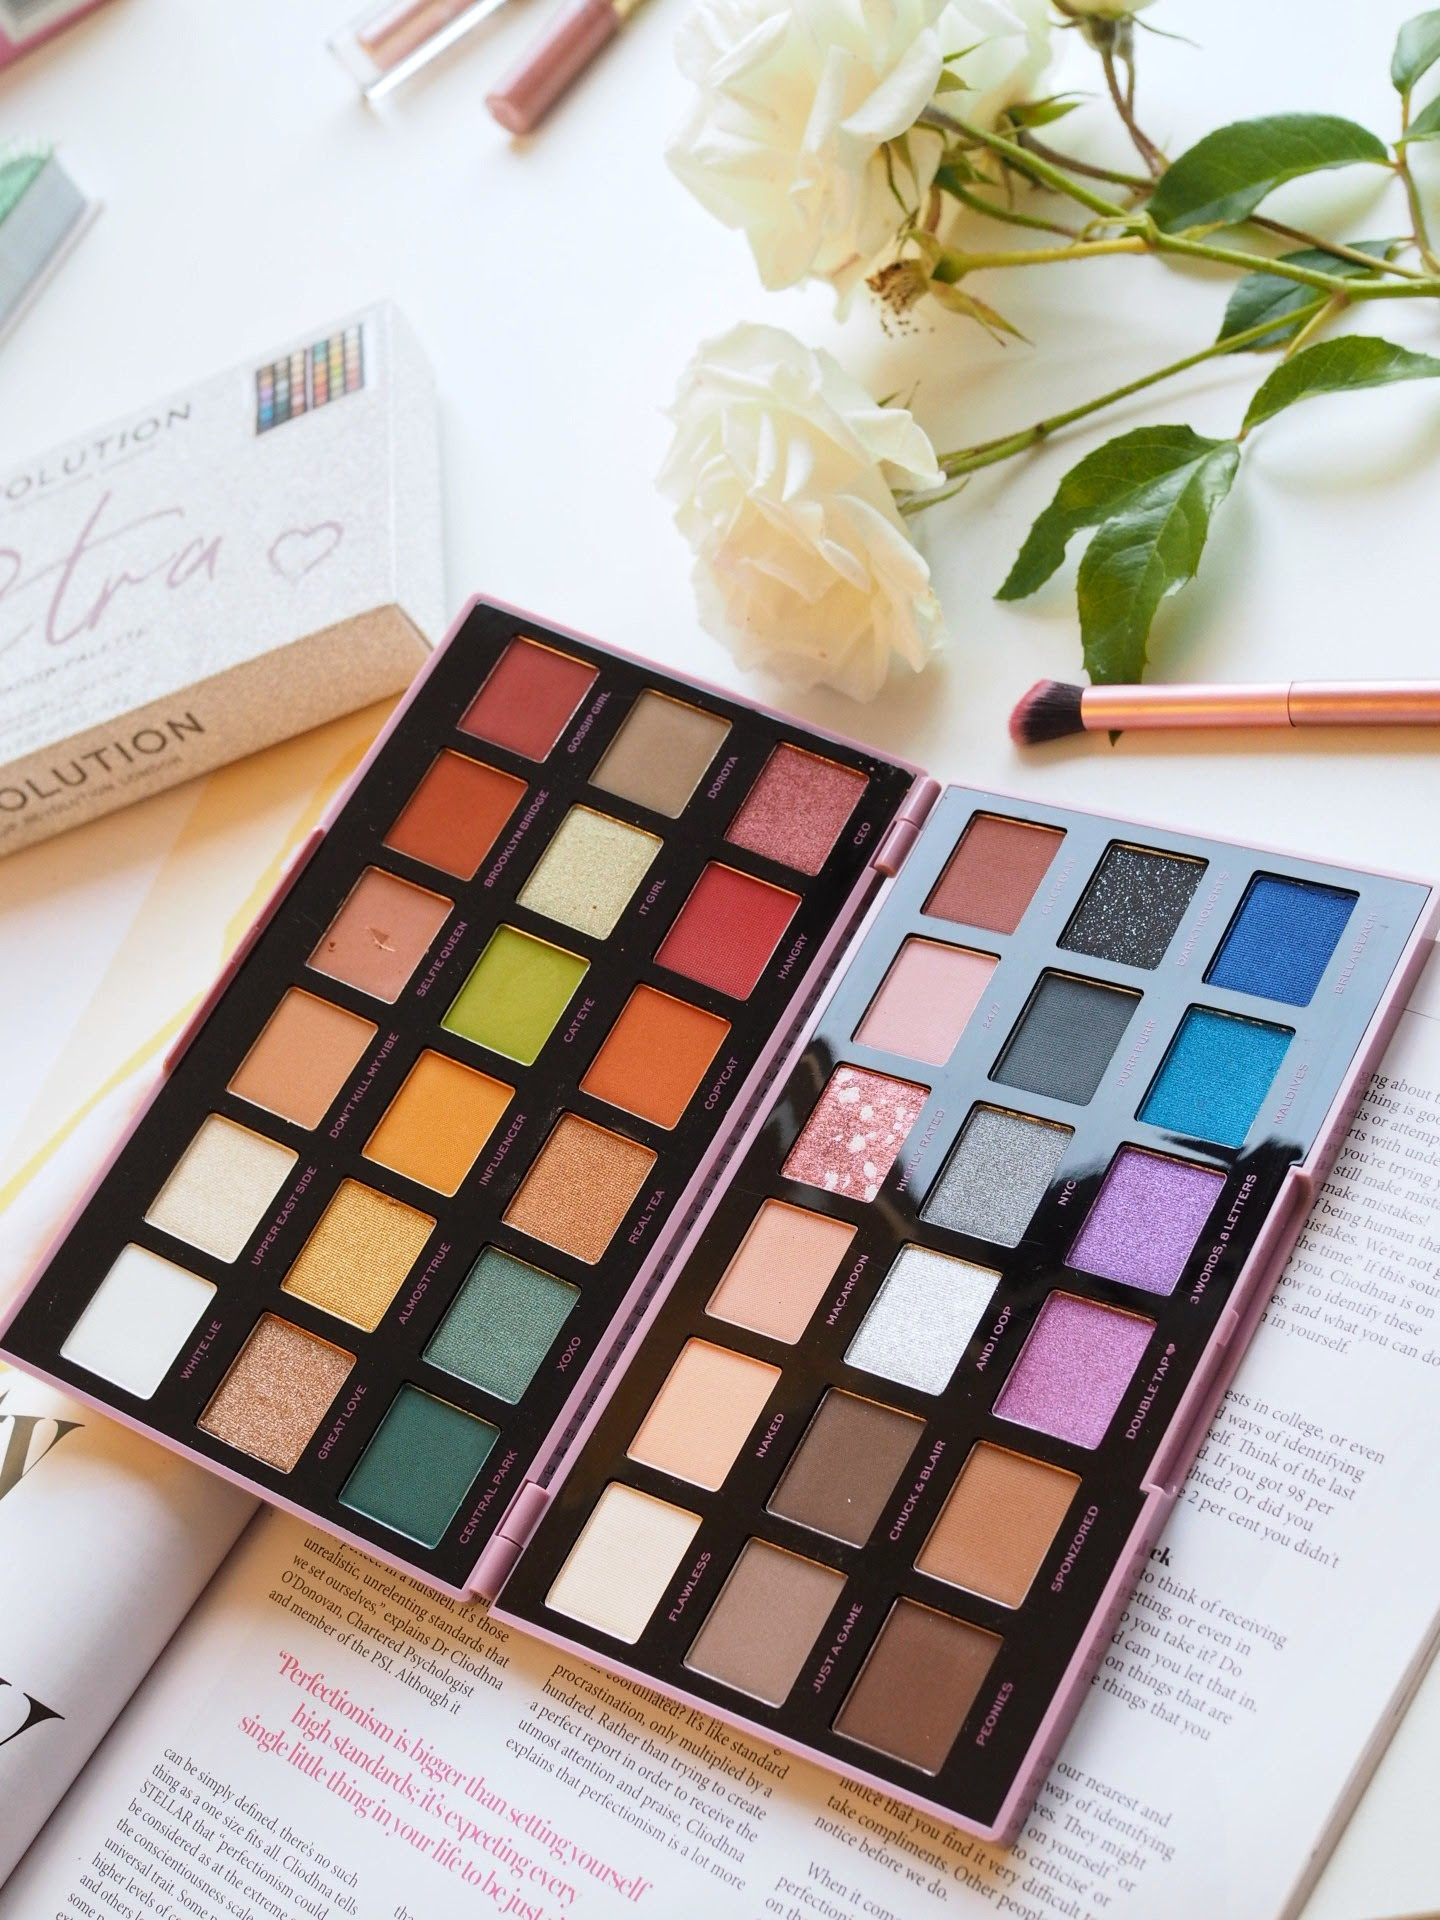 https://www.parfemy-elnino.cz/makeup-revolution-london-x-petra-xoxo-eyeshadow-palette-ocni-stin-pro-zeny-28-8-g/